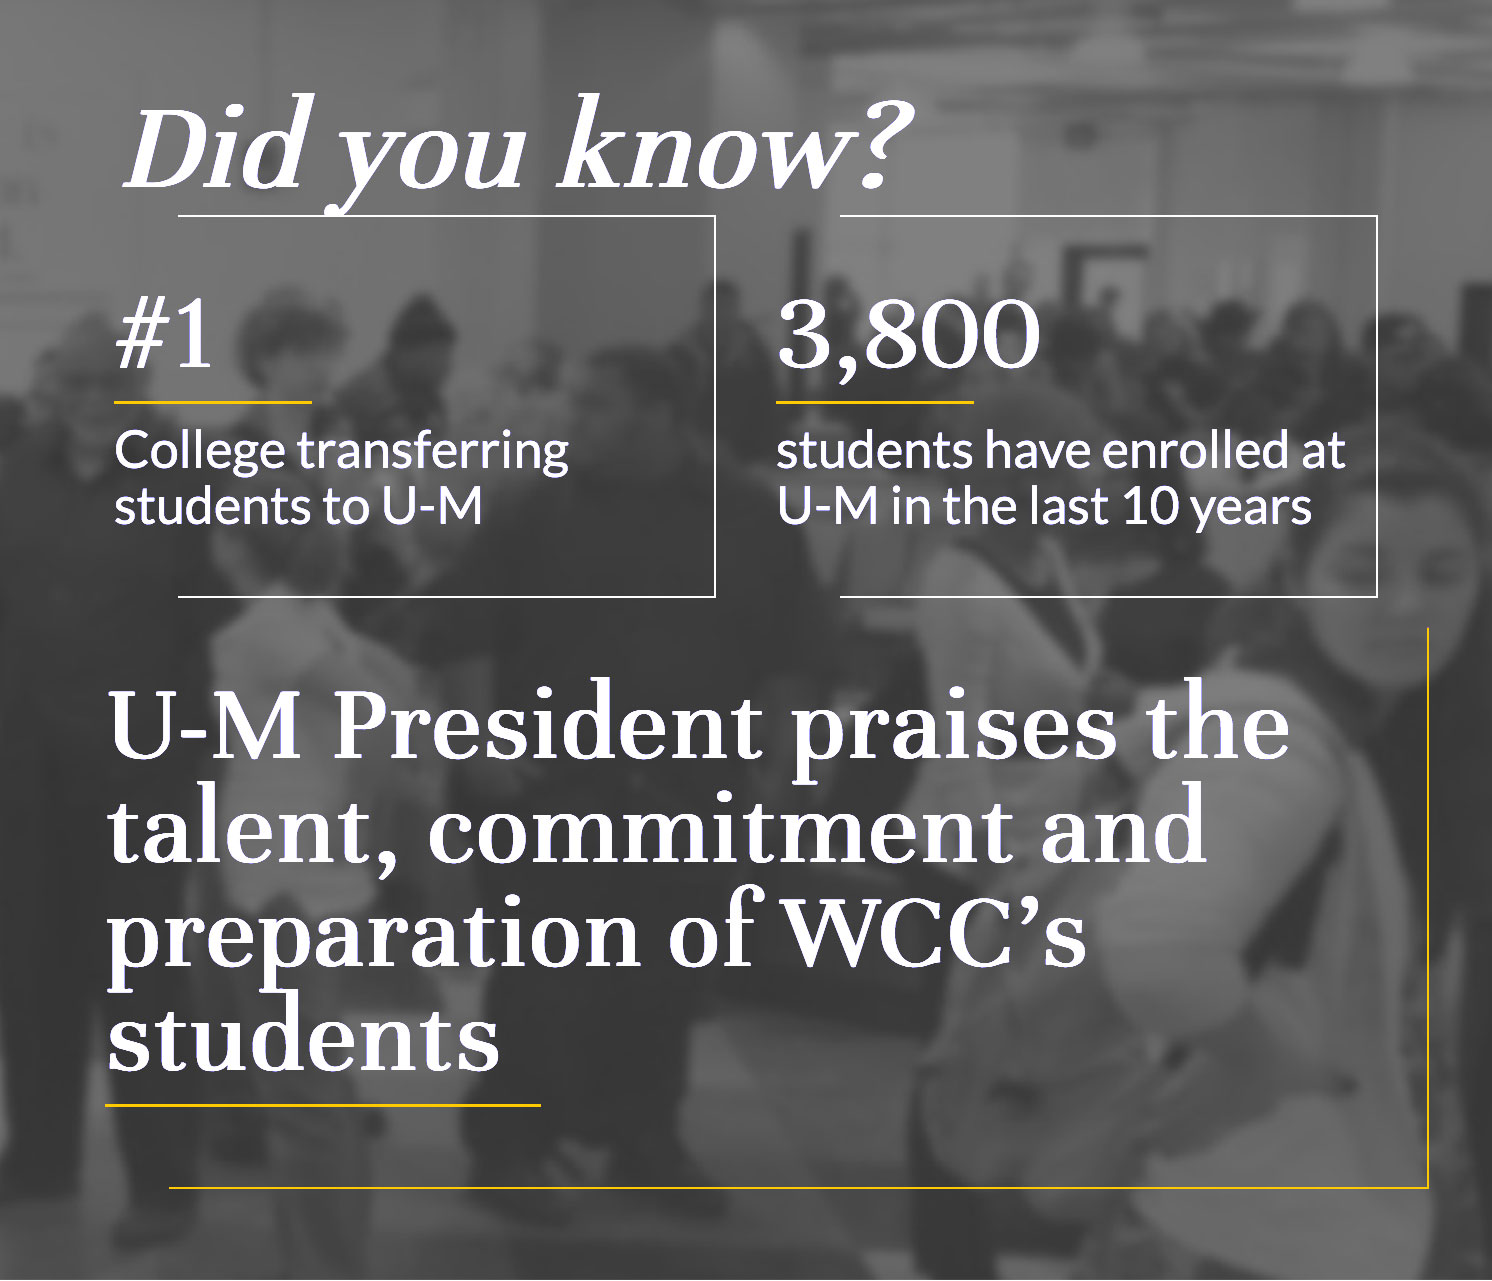 Did you know? #1 college transferring students to U-M. 3,800 studnets have enrolled at U-M in the last 10 years. U-M President praises the talent, commitment and preparation of WCC's students.